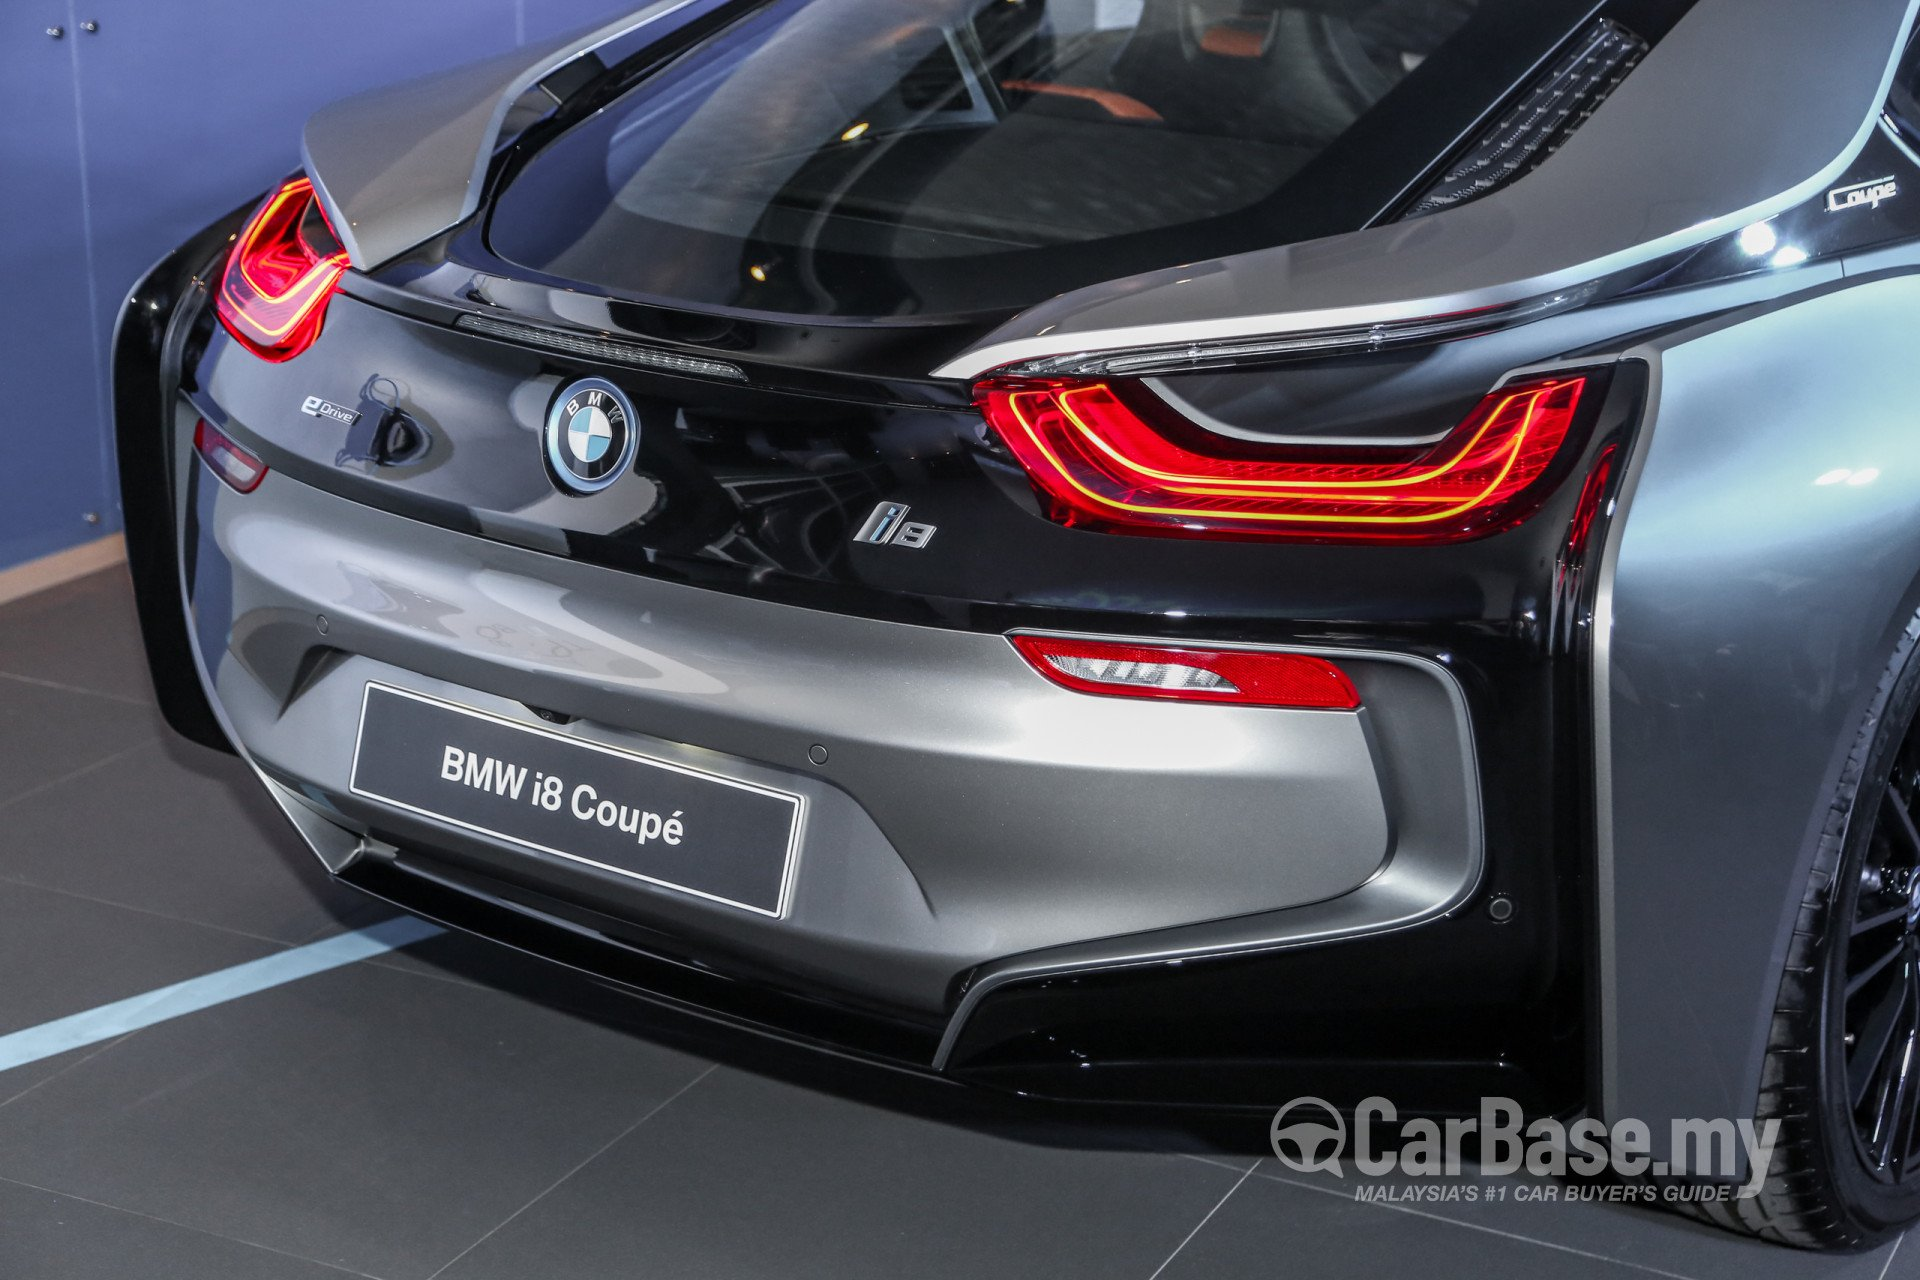 Bmw I8 Coupe I12 Lci 2018 Exterior Image 50509 In Malaysia